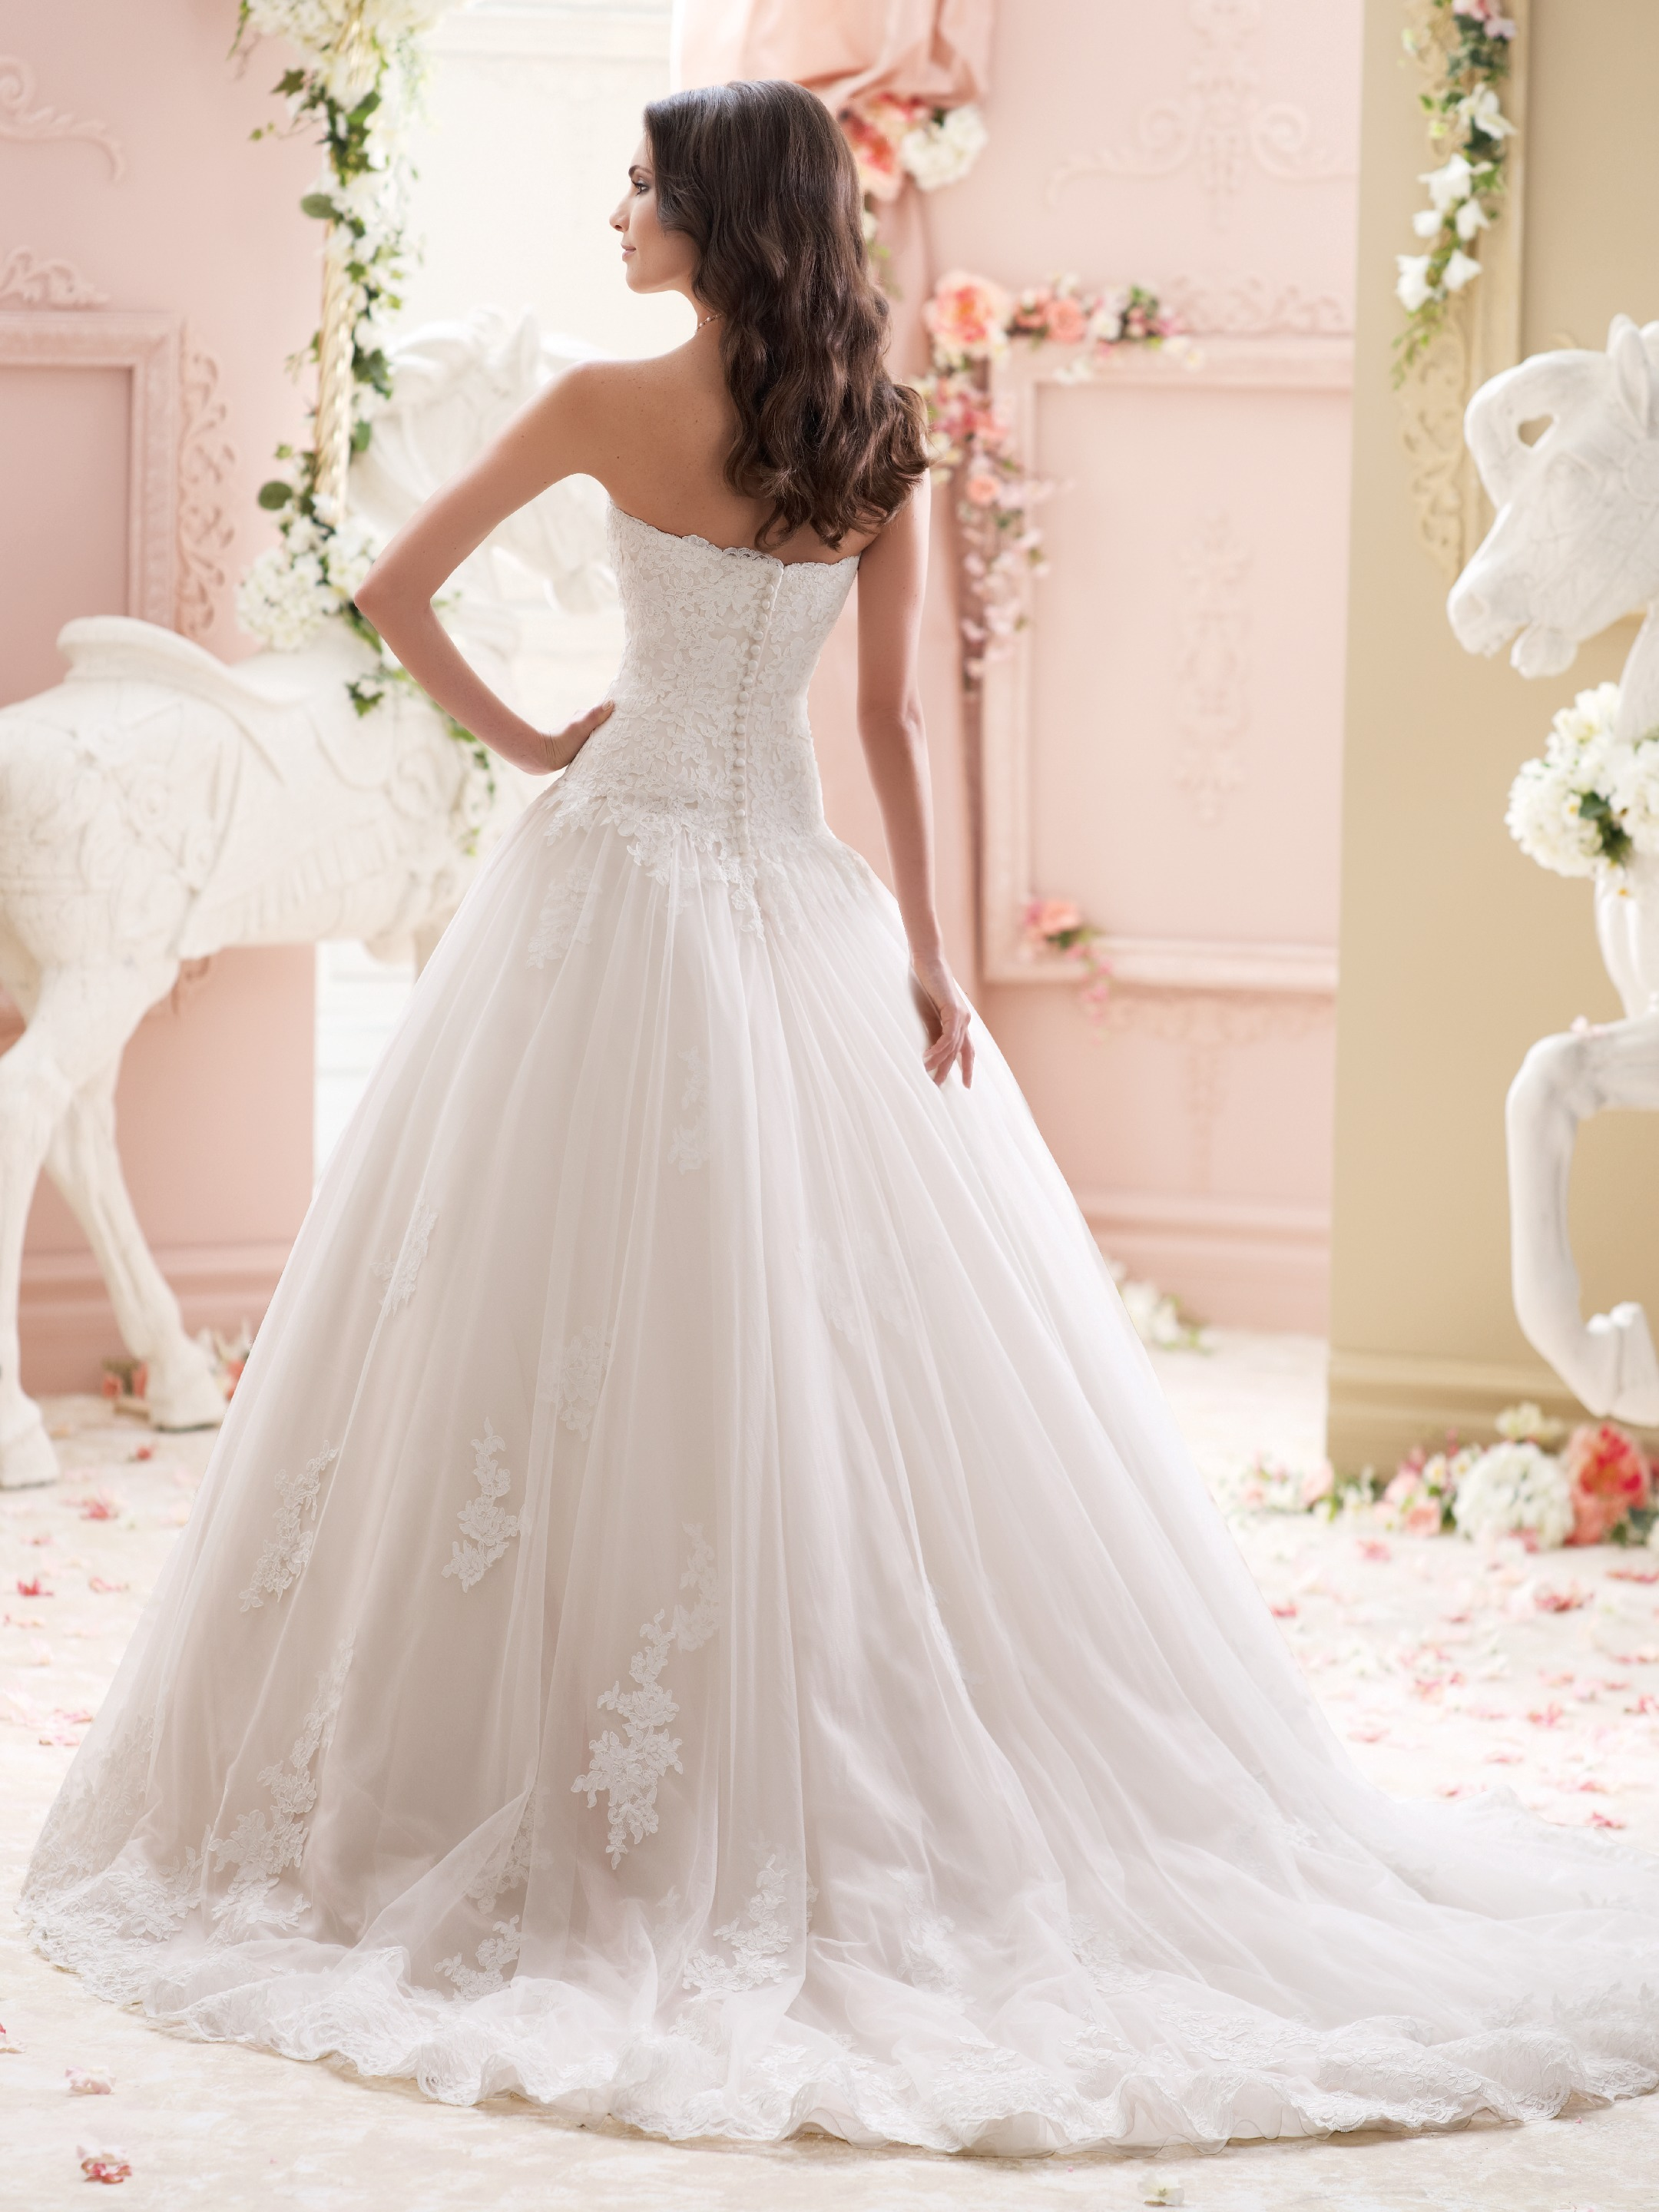 Another David Tutera bridal gown design; beautiful, classic and feminine.